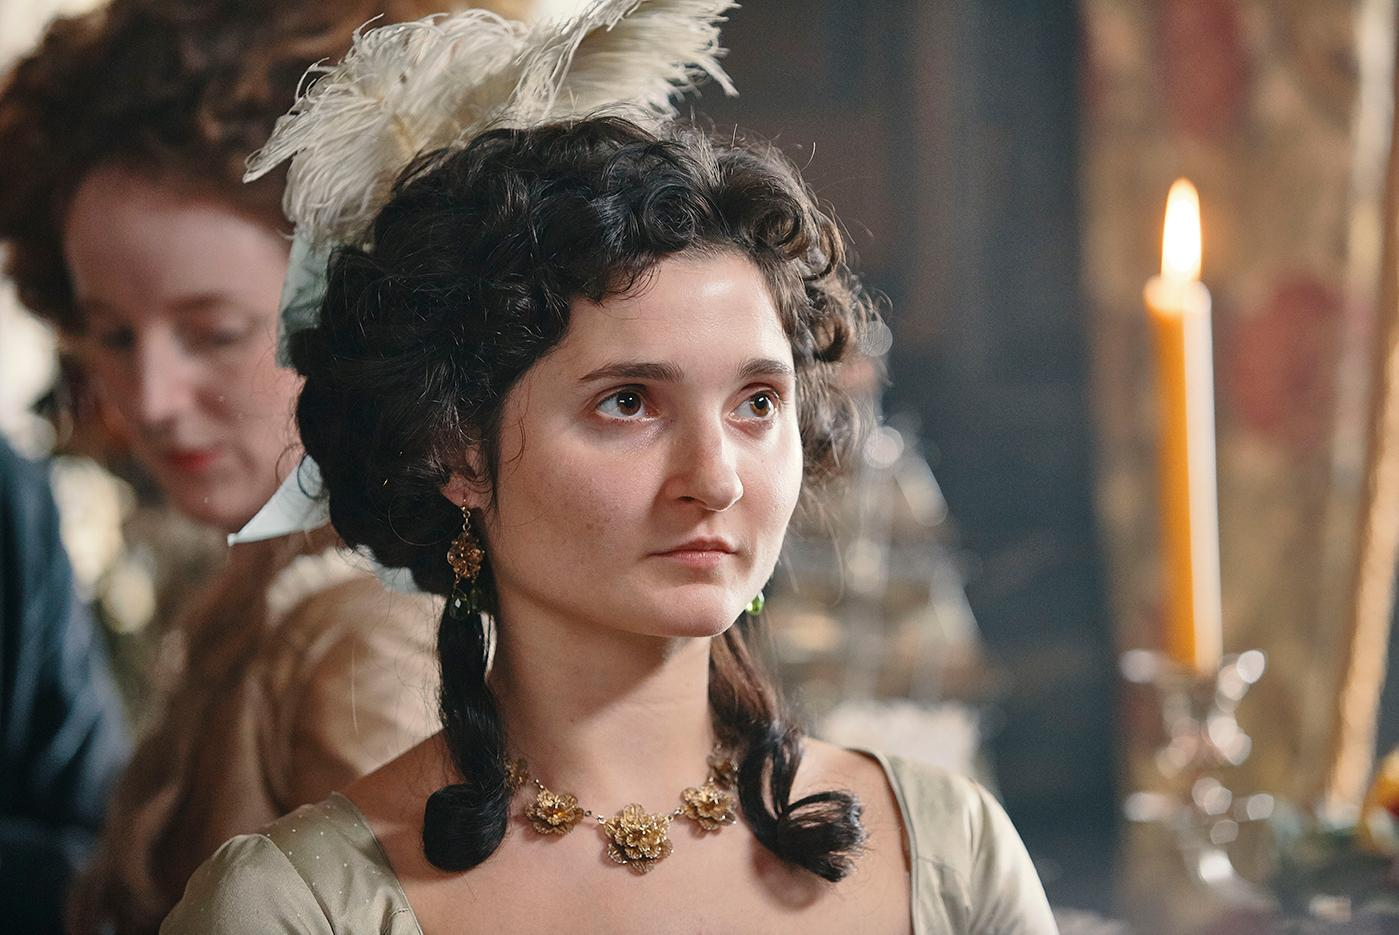 Ruby Bentall as Verity in Poldark. Photo: Mammoth Screen for BBC and MASTERPIECE